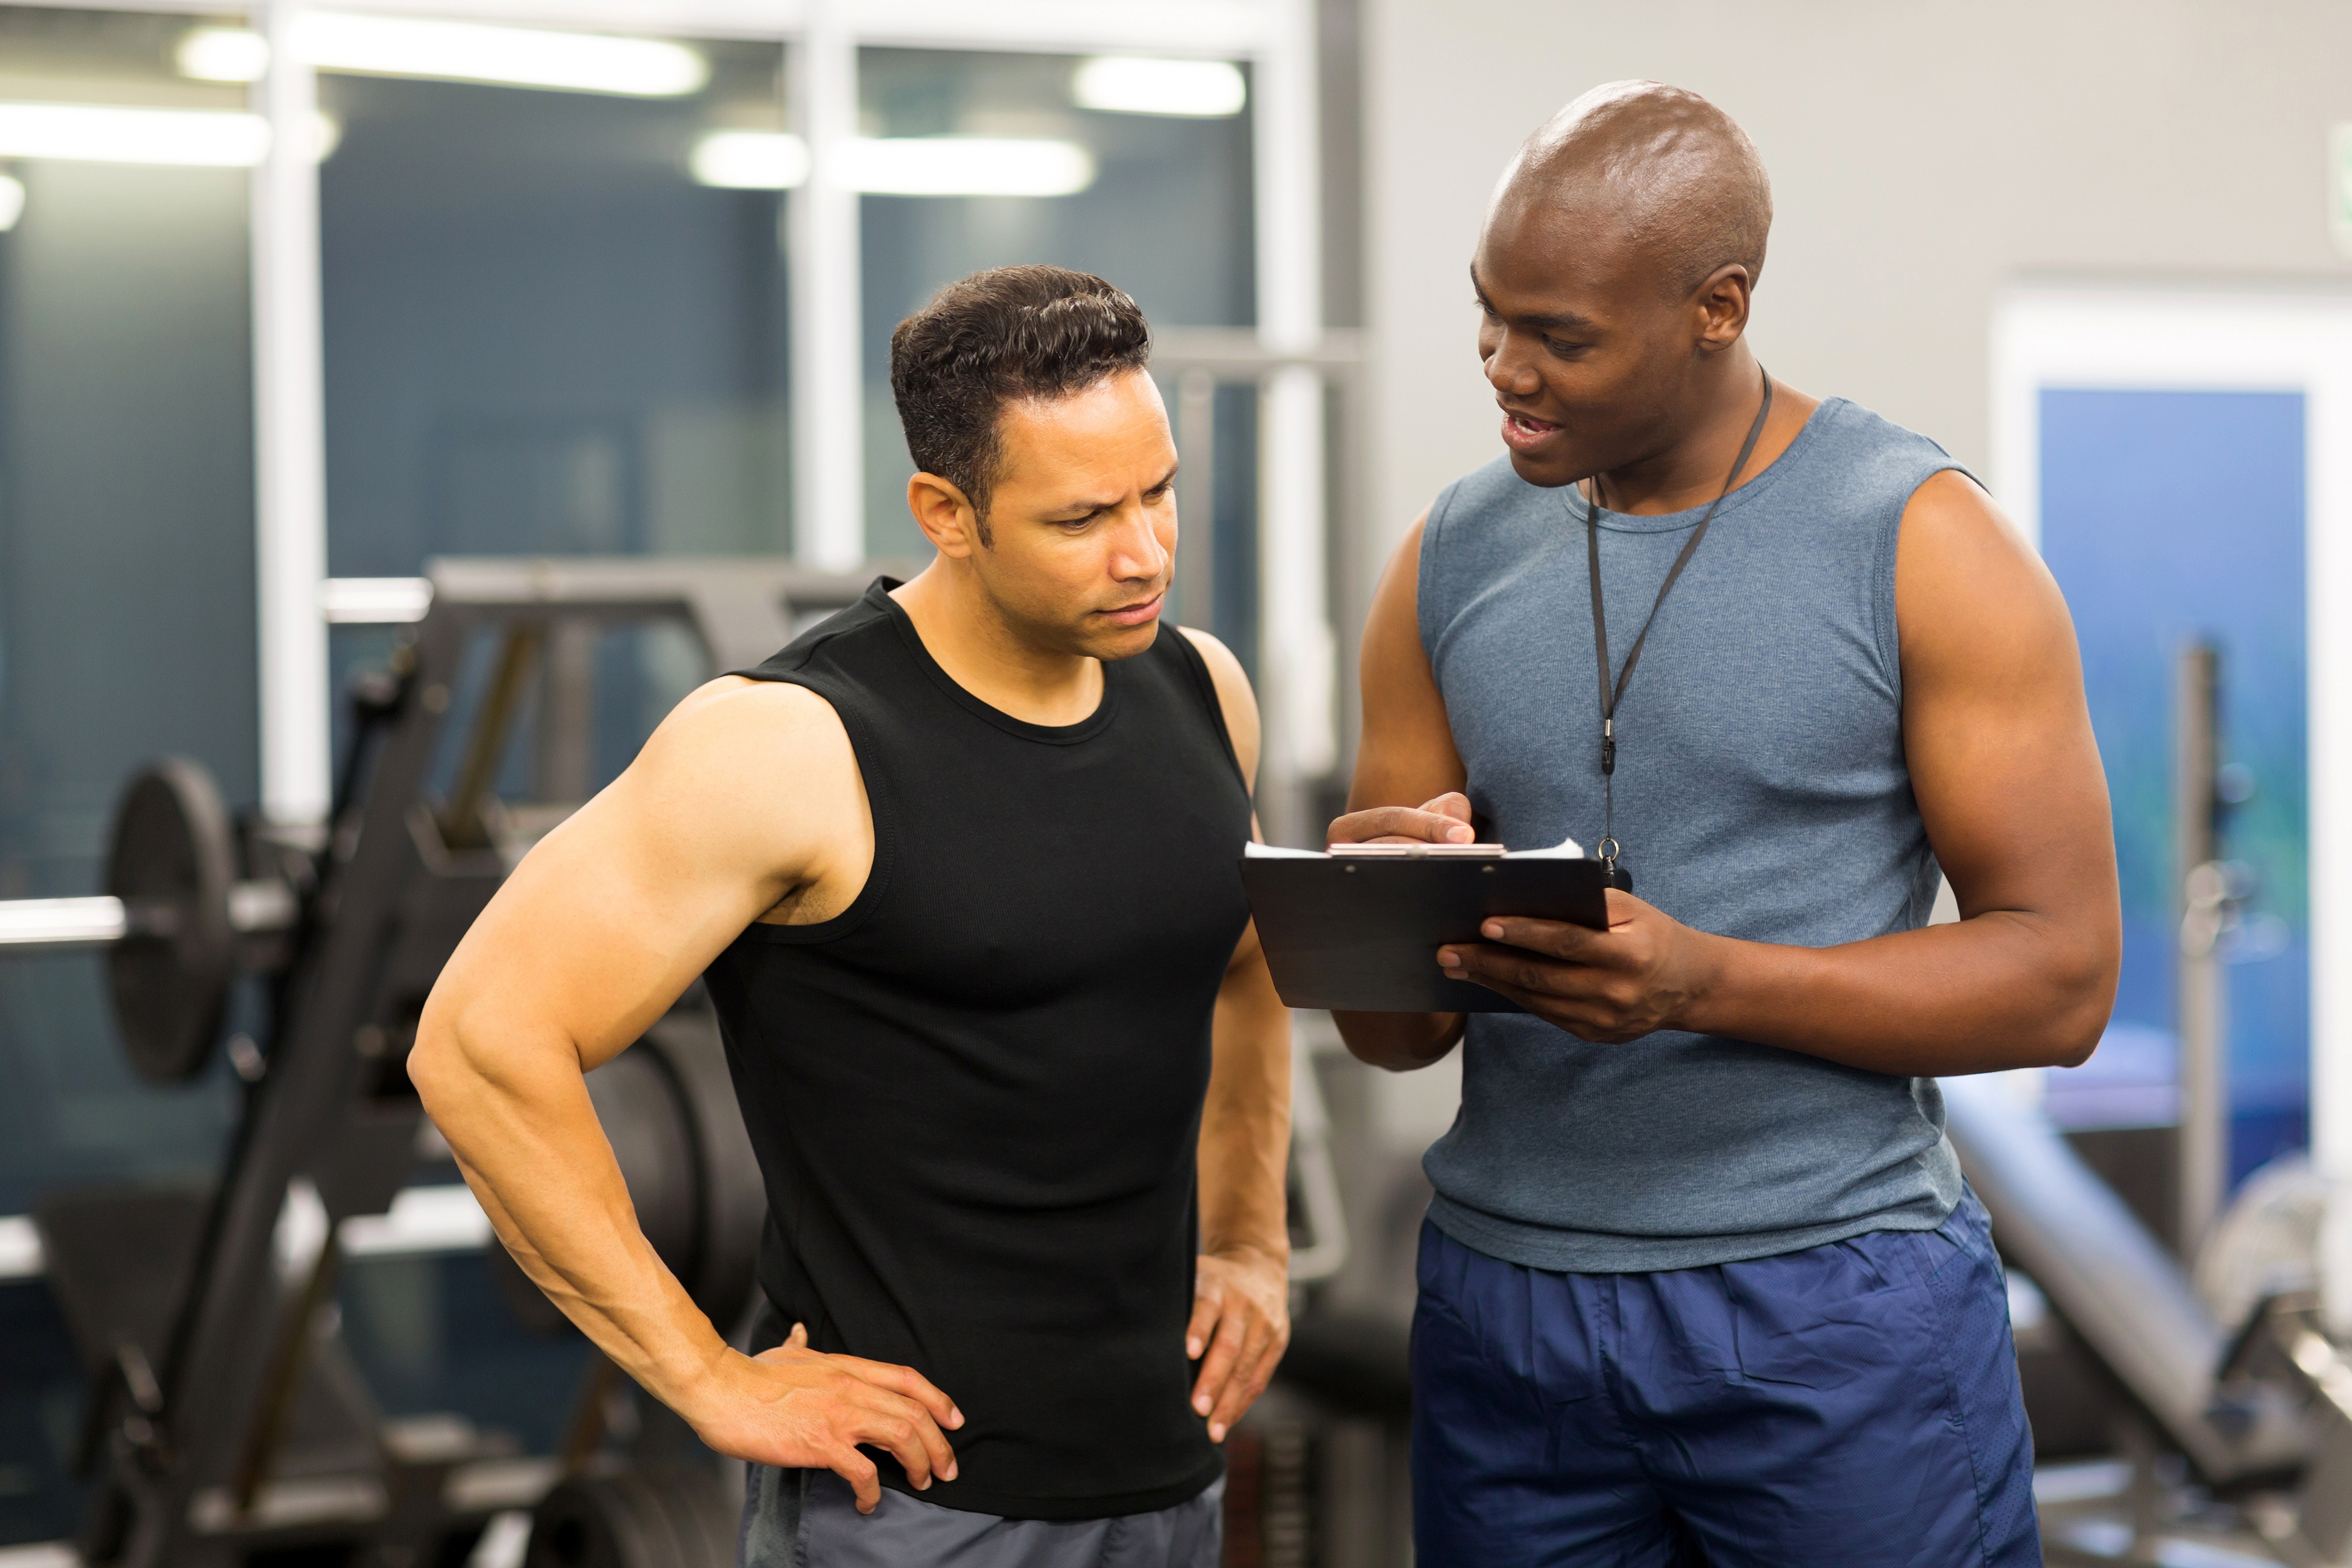 7 of the happiest jobs you can get with a jjc degree joliet junior college personal trainer